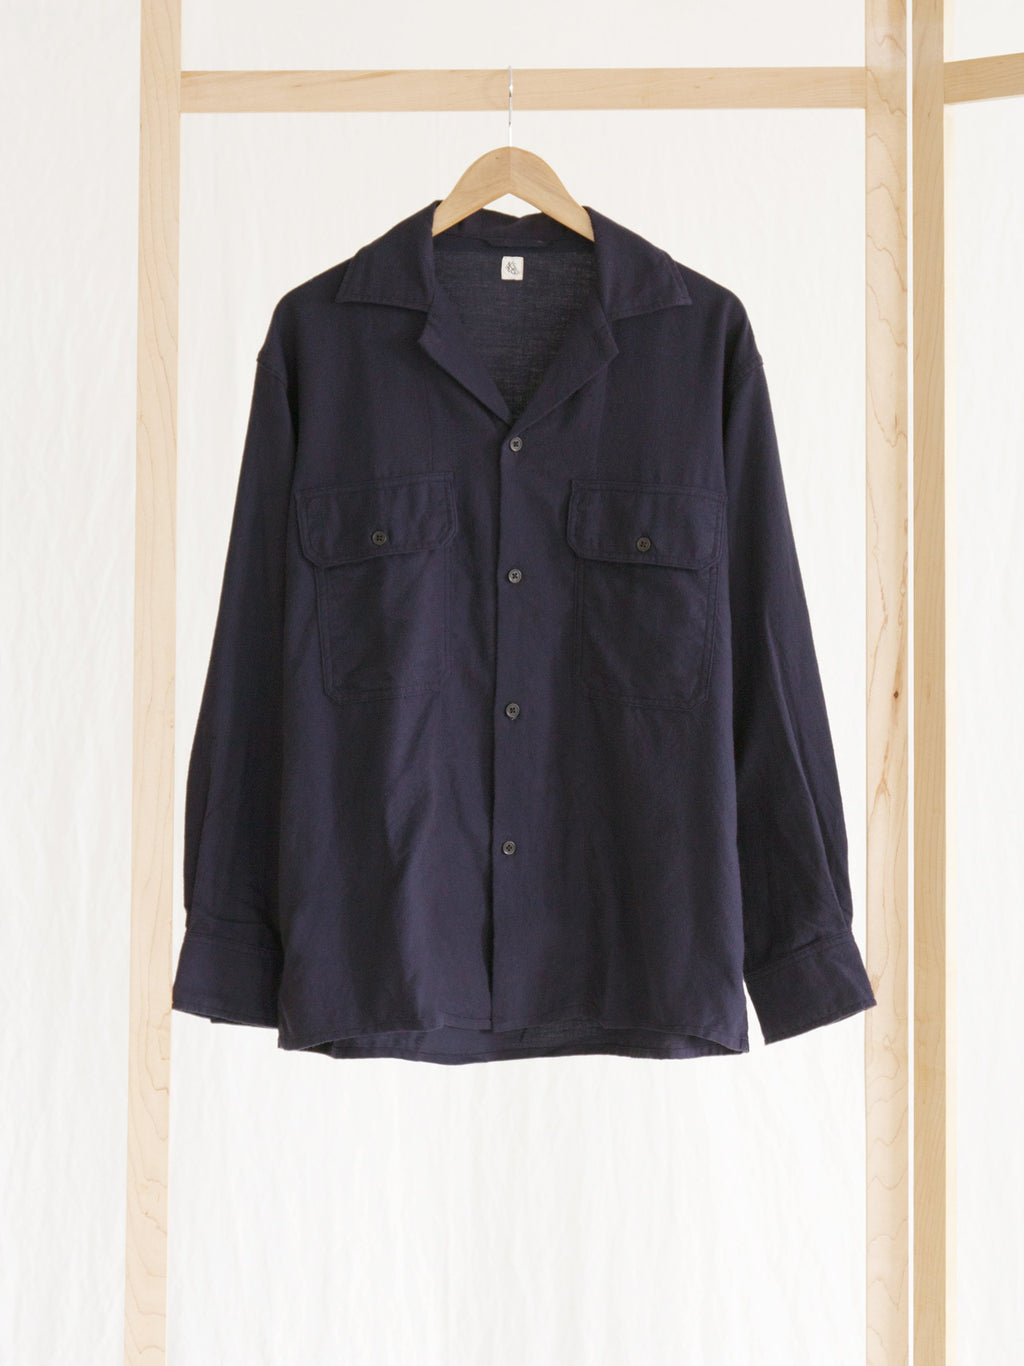 Namu Shop - Kaptain Sunshine Cotton Cashmere Flannel Open Collar Shirt